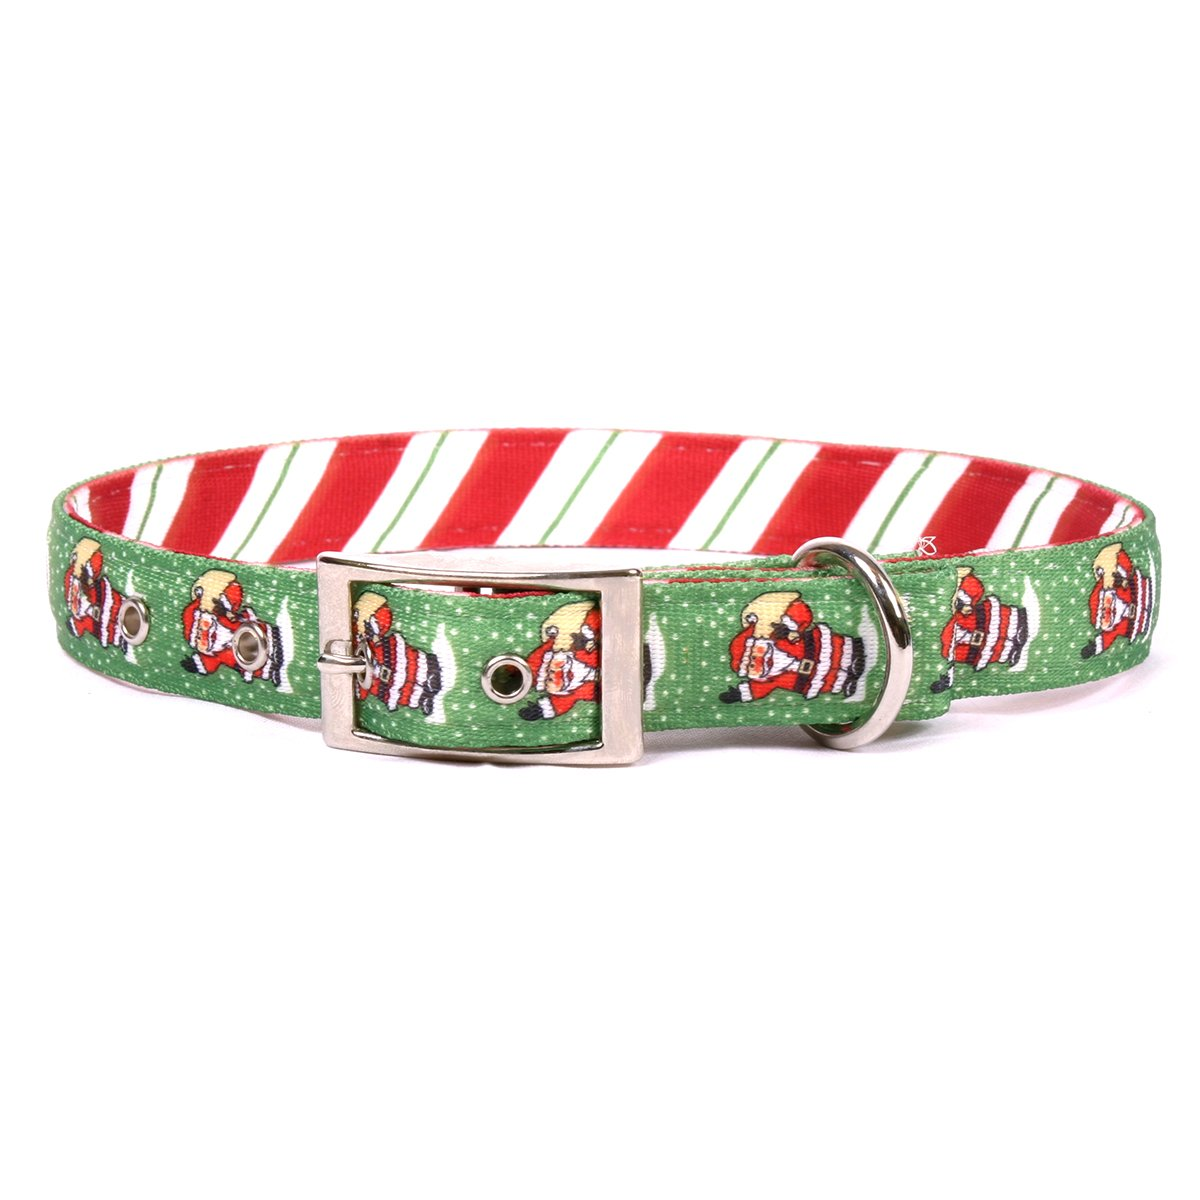 Yellow Dog Design Santa Claus Uptown Dog Collar-Size Medium-1 inch Wide and fits Neck Sizes 15 to 18.5 inches